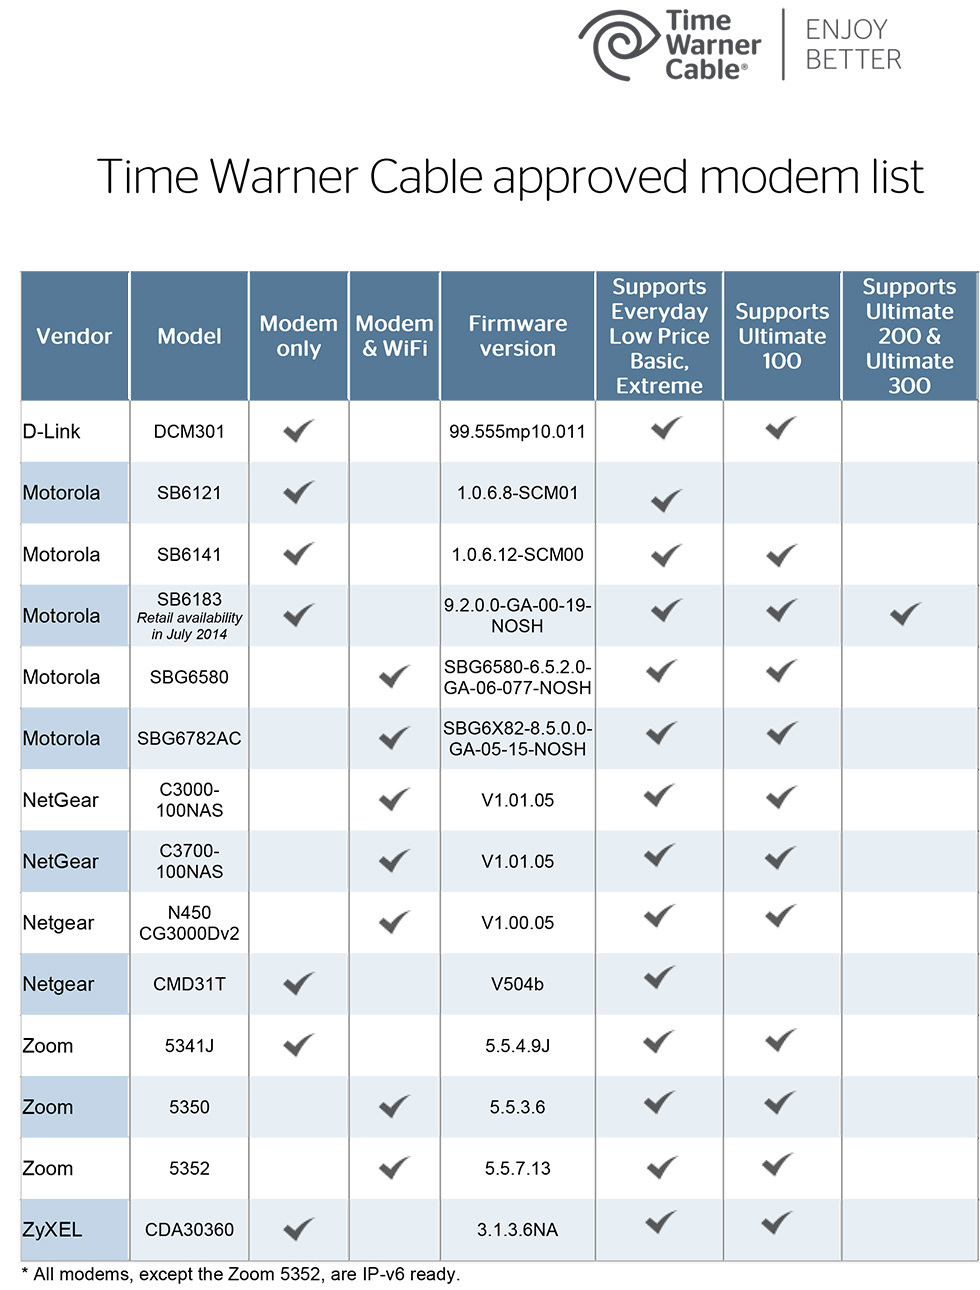 About Time Warner Cable Time Warner Cable Inc. (NYSE: TWC) is among the largest providers of video, high-speed data and voice services in the United States, connecting 16 million customers to entertainment, information and each other.